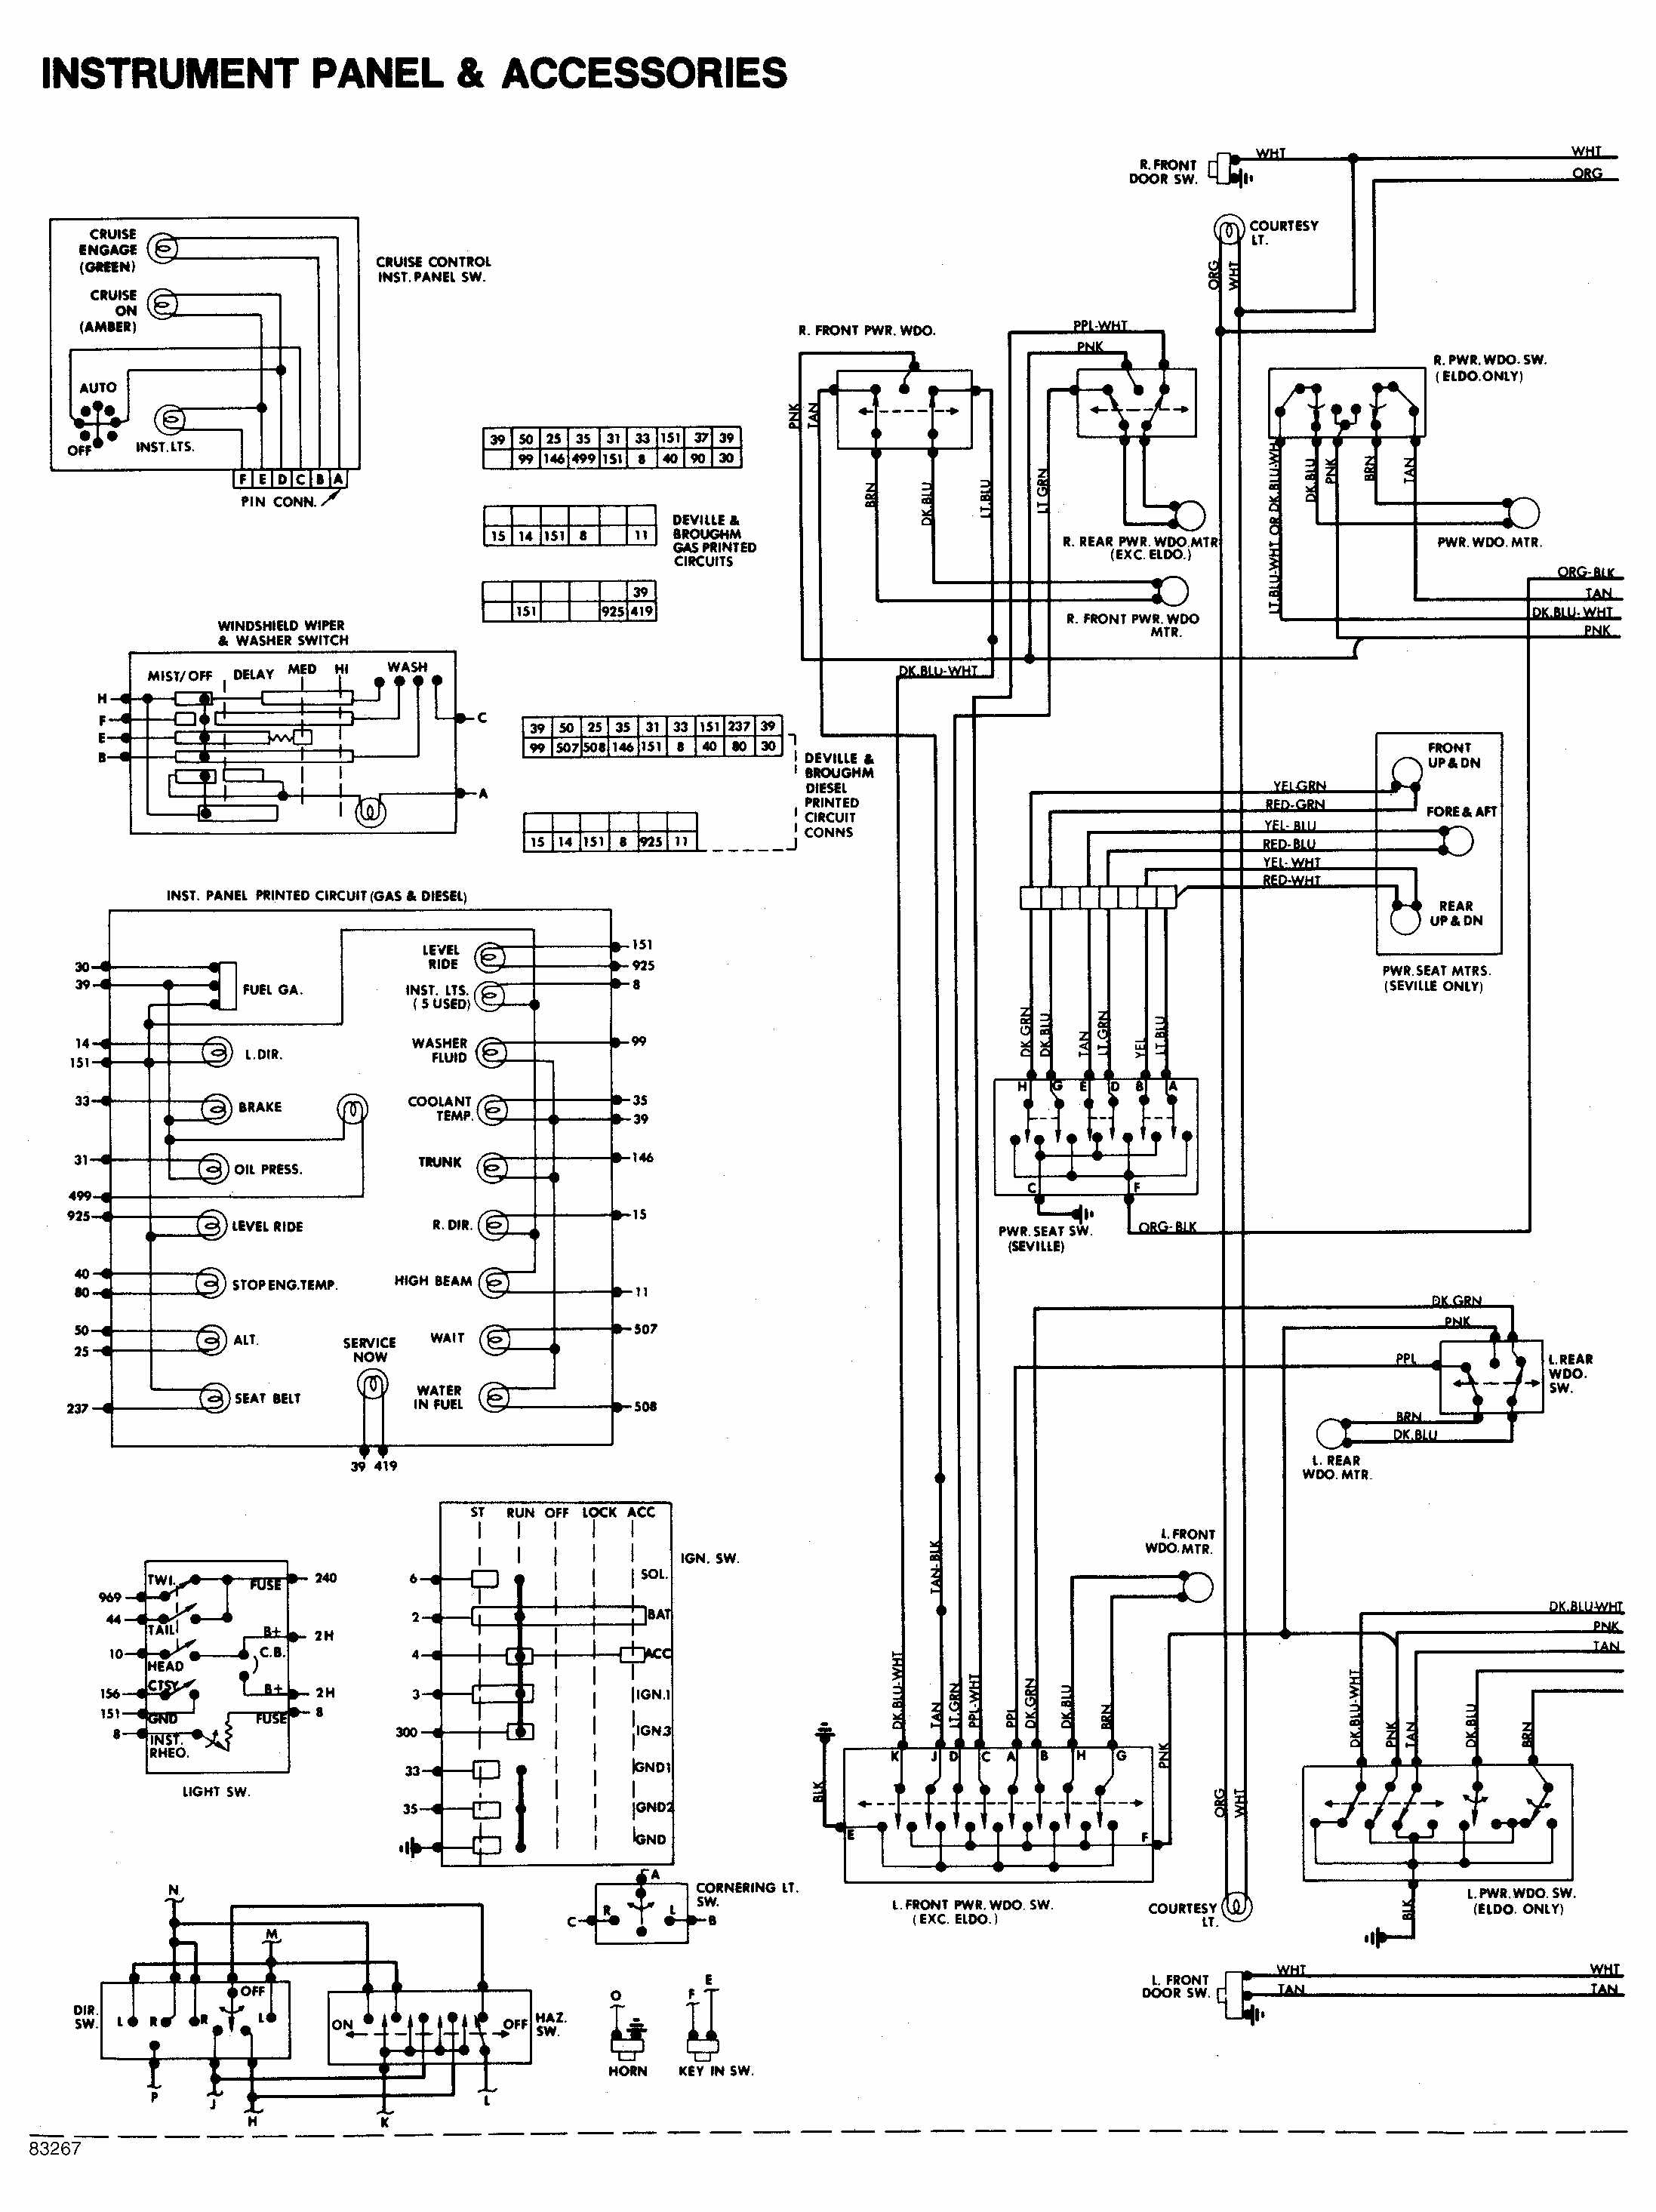 1968 Corvette Power Window Wiring Diagram Libraries Harness 1967 Third Levelchevy Diagrams For Chevelle